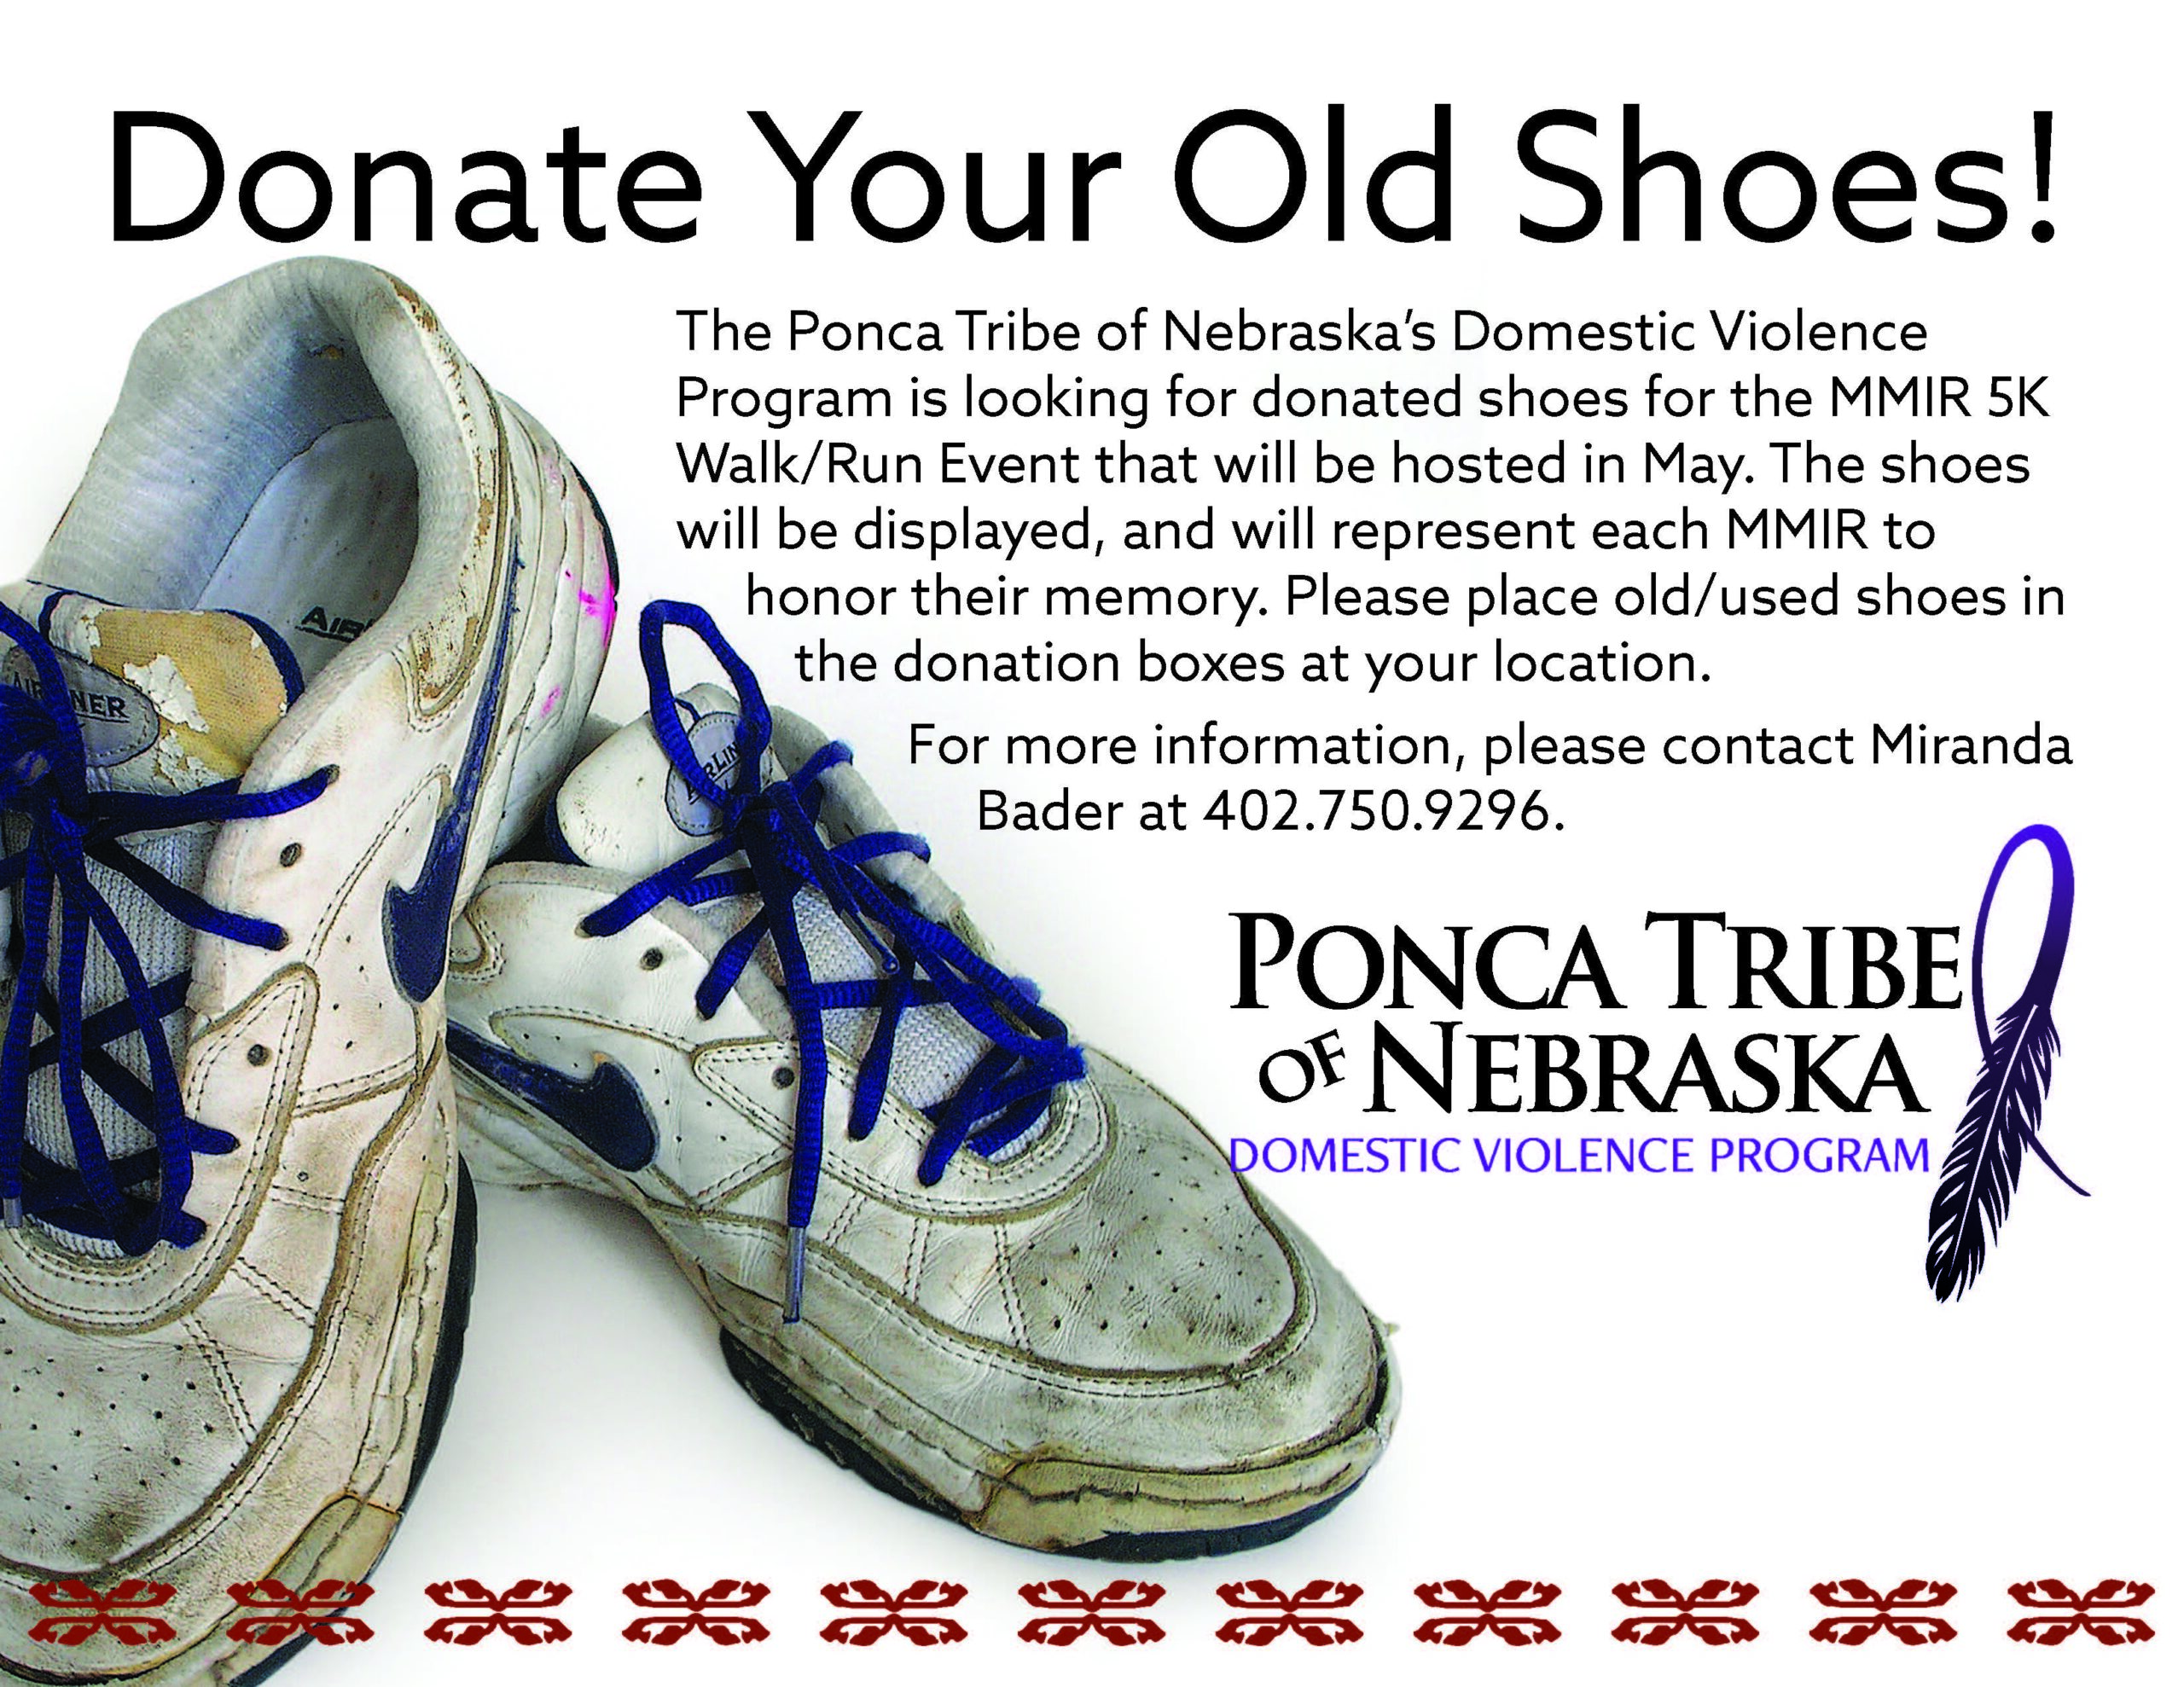 Shoe Donations Requested for MMIR Walk/Run